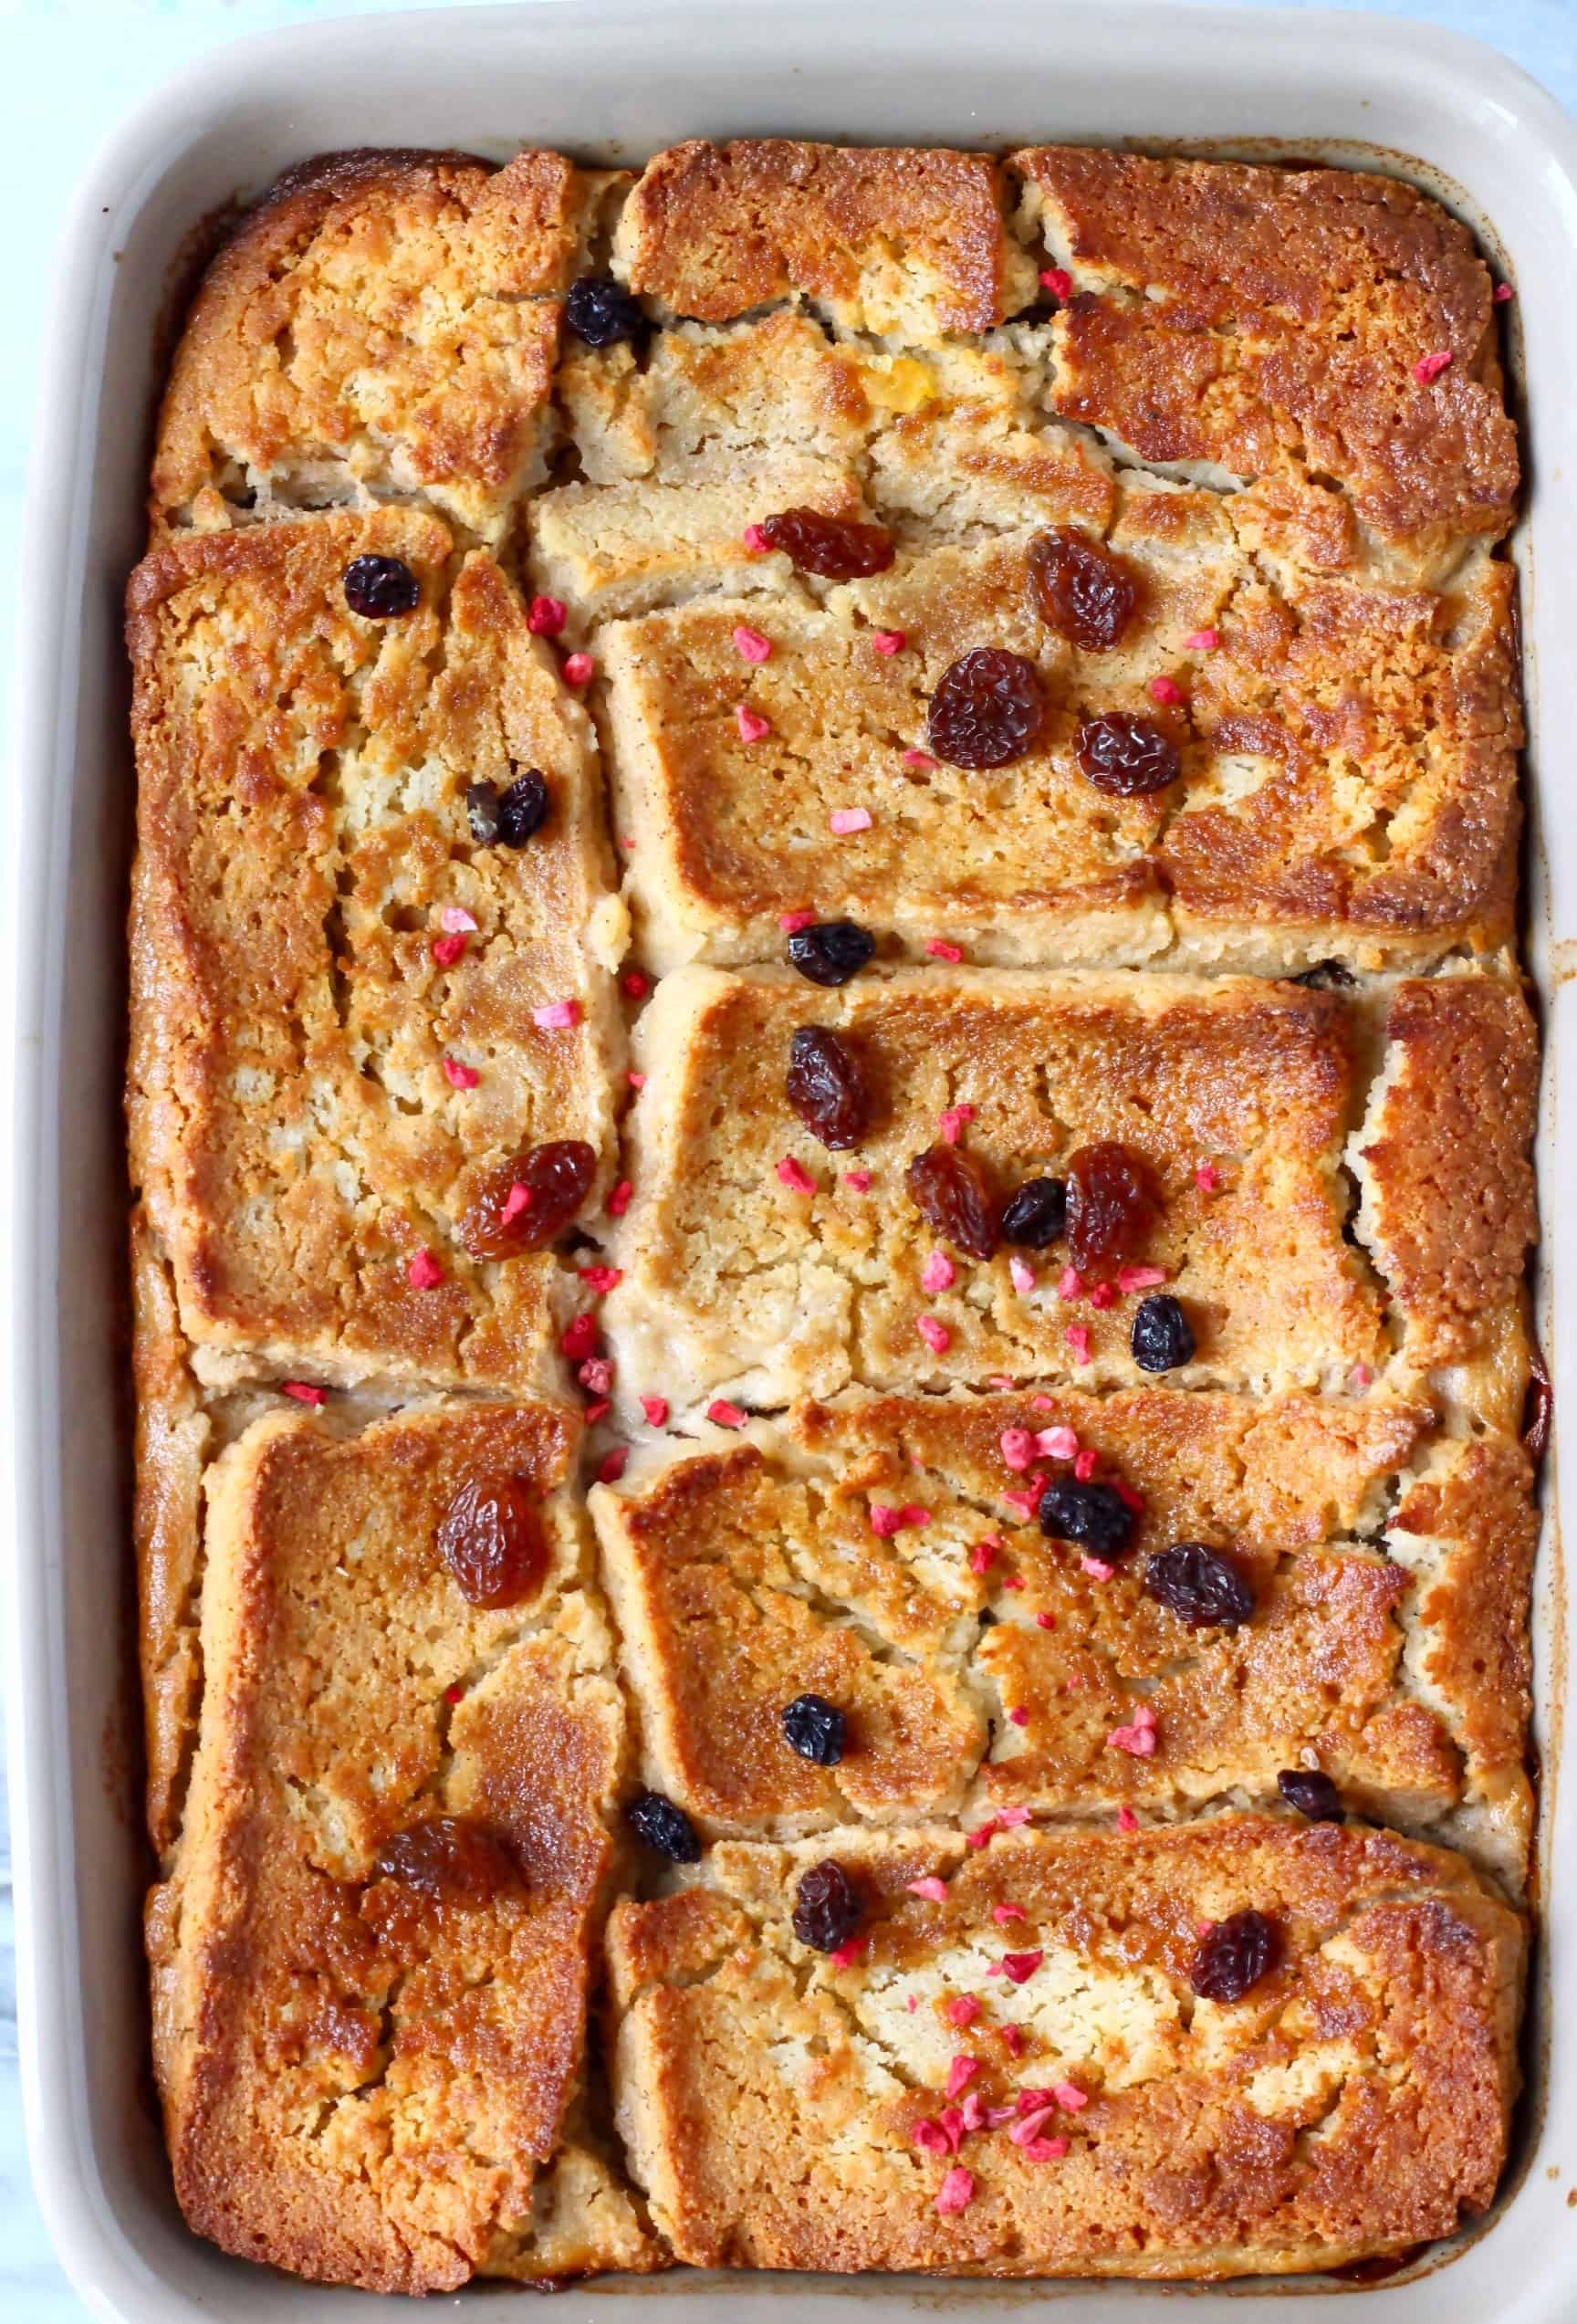 Bread and butter pudding in a grey rectangular baking dish sprinkled with raisins